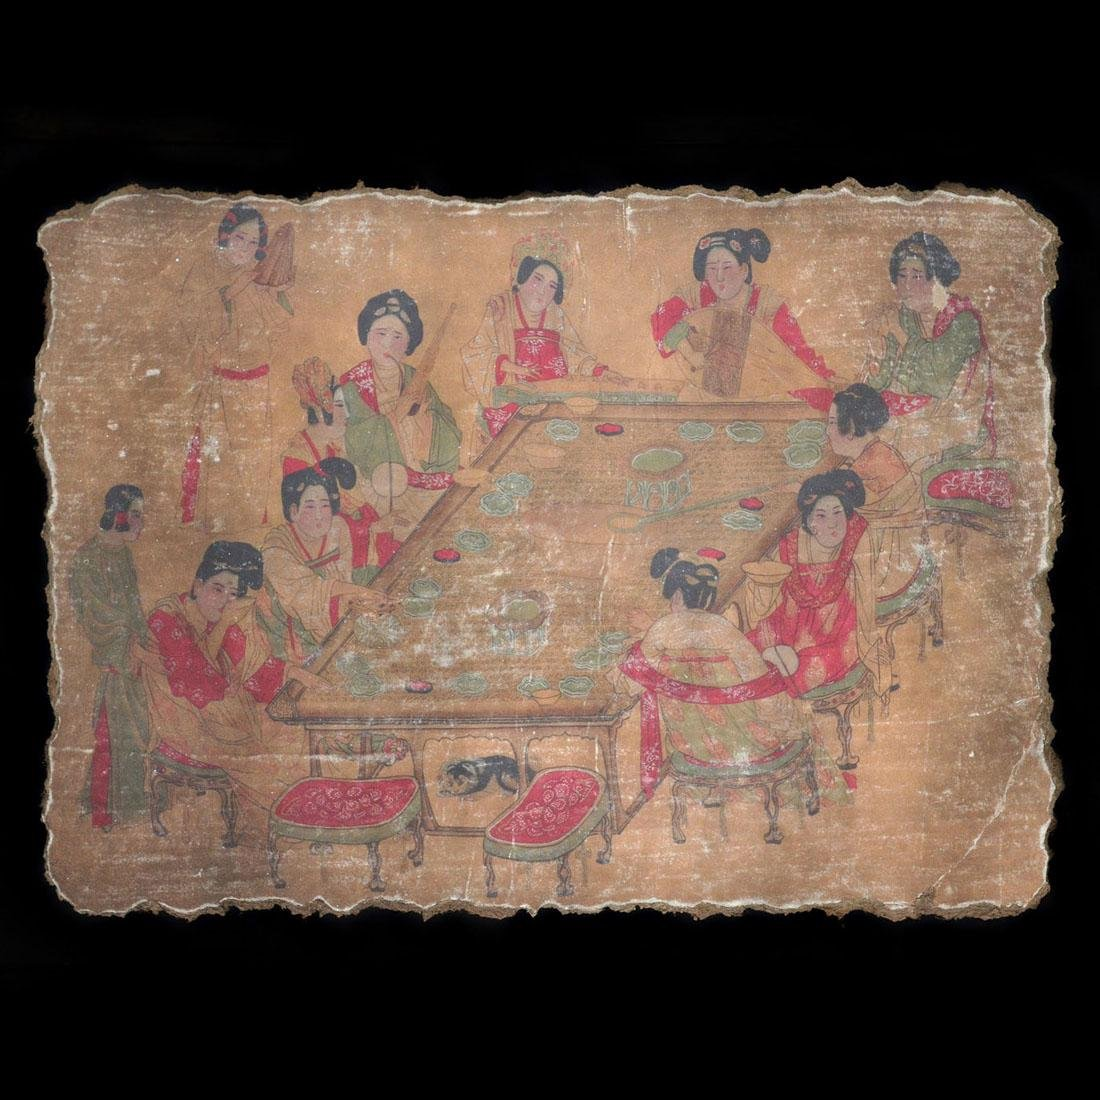 Song Dynasty, A Polychrome Stucco Fresco Panel of Court